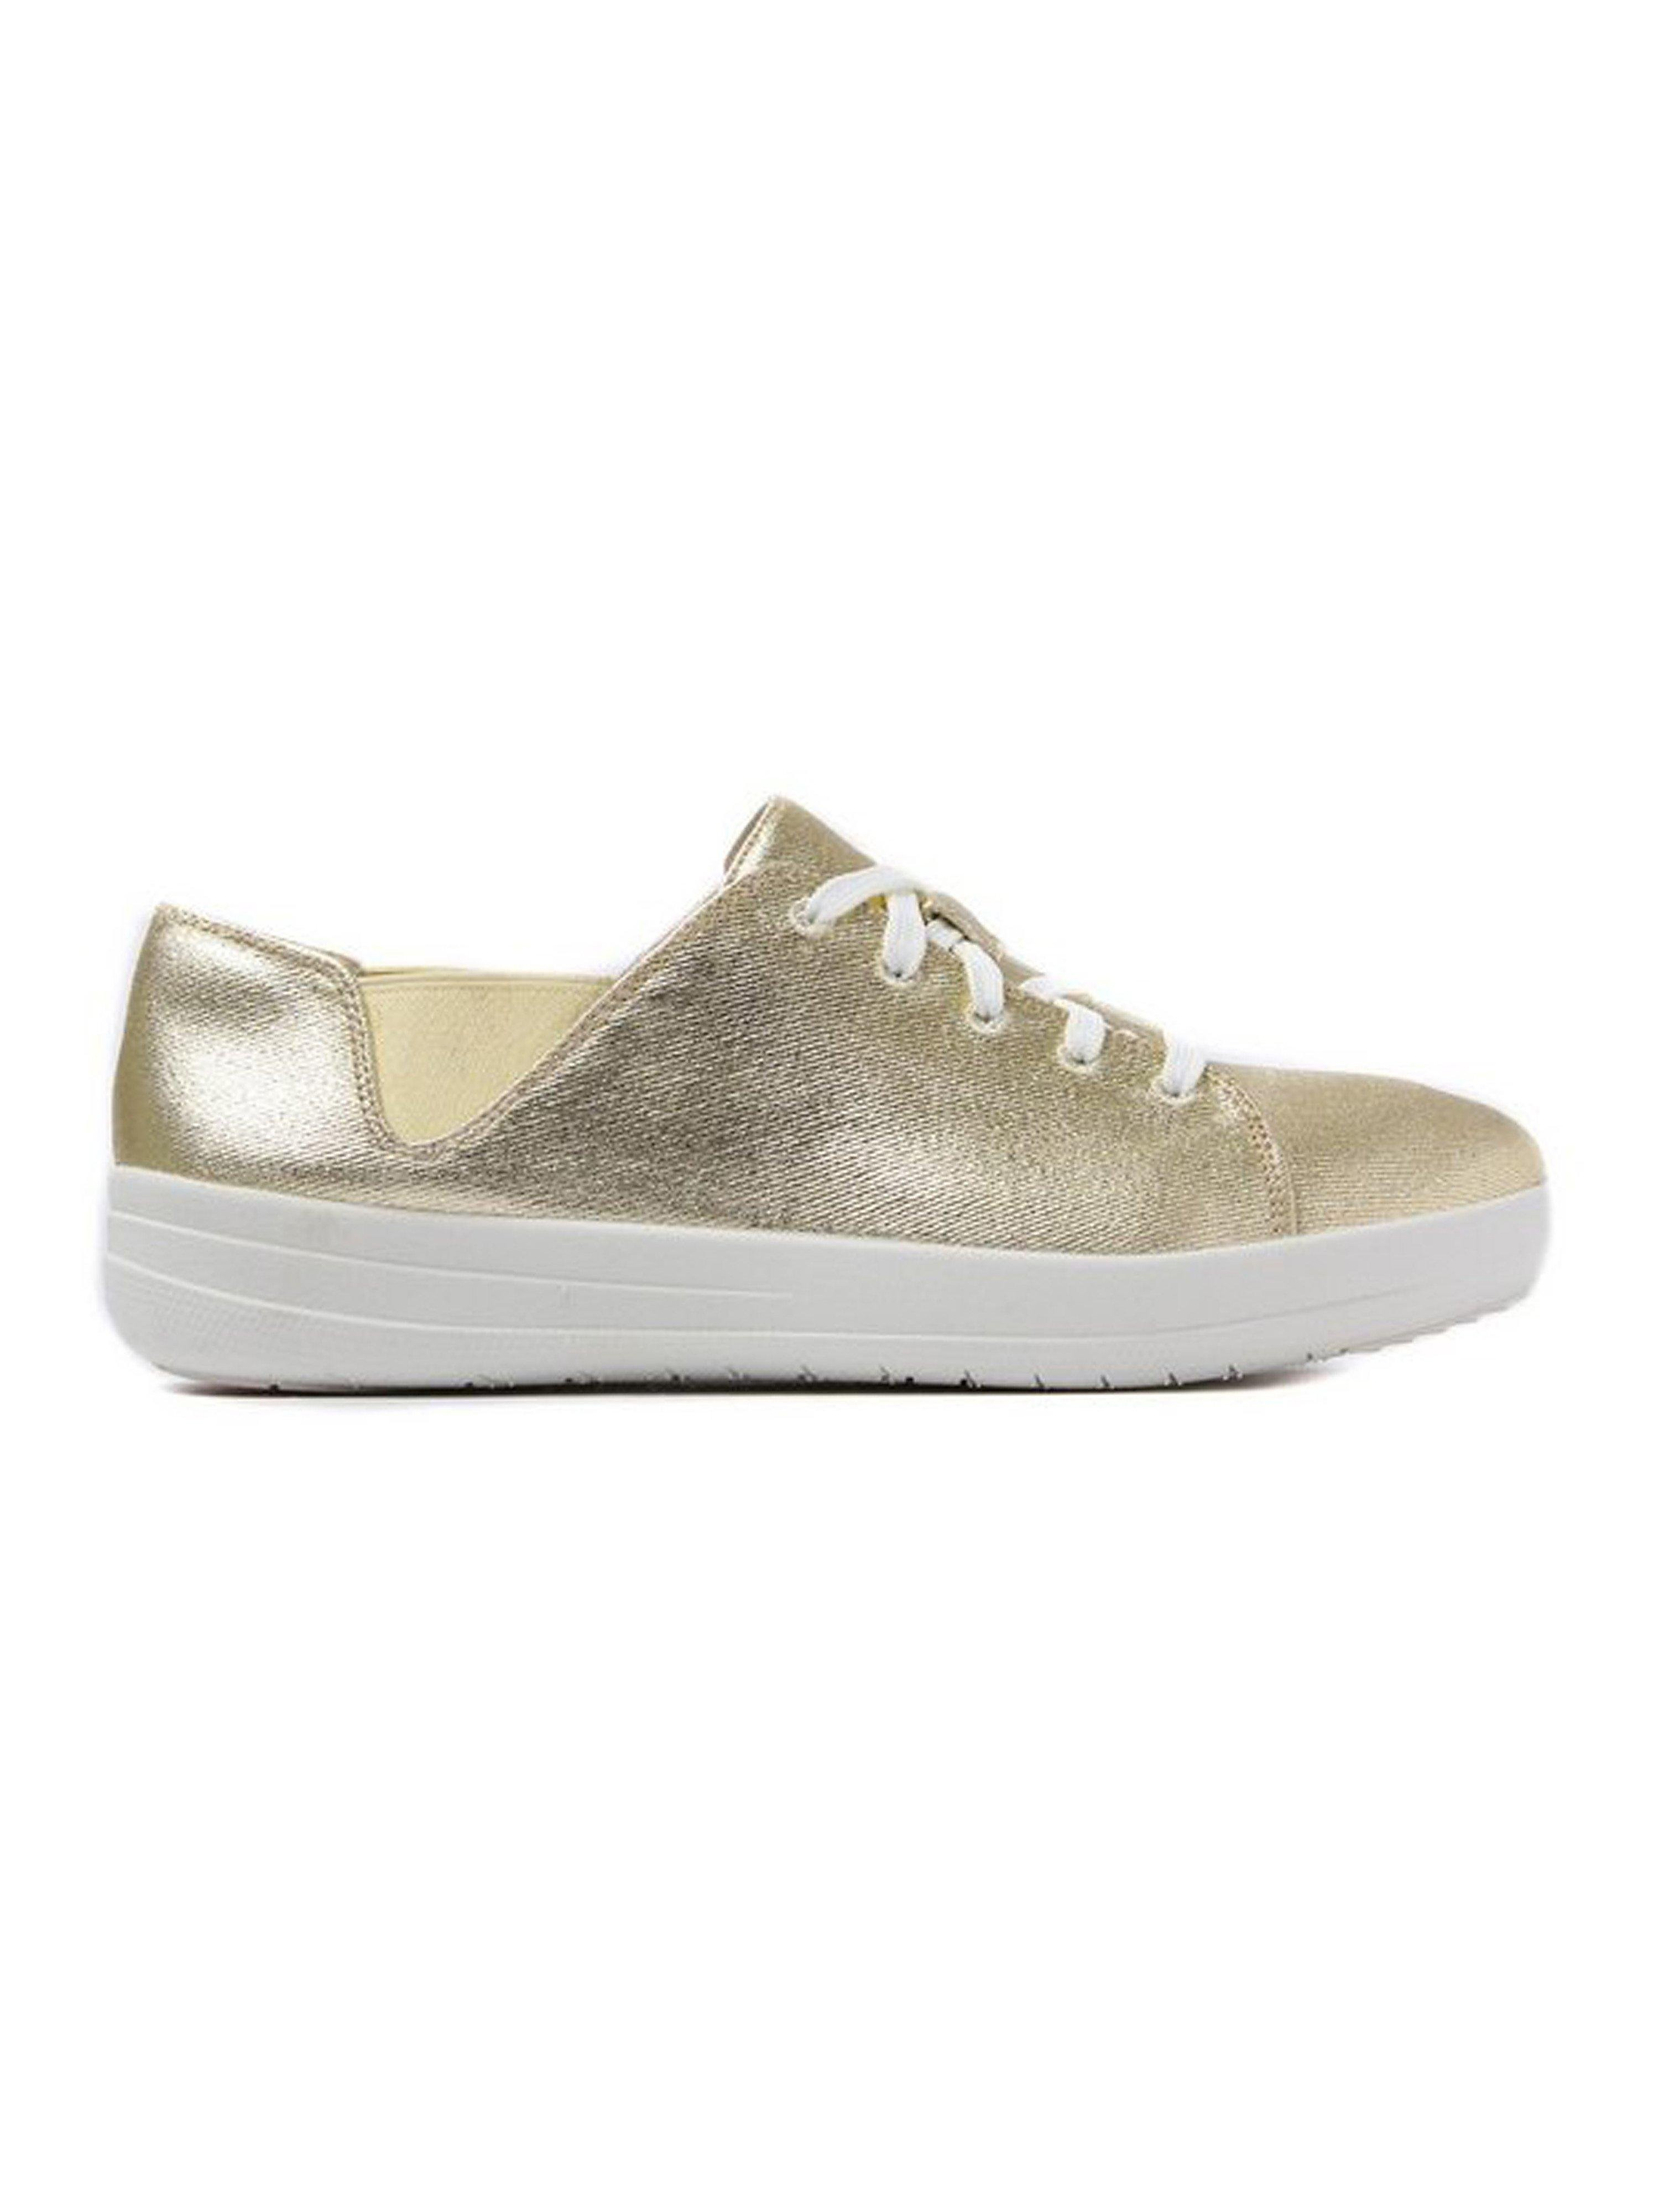 FitFlop Women's F-Sporty Lace Up Sneakers - Gold